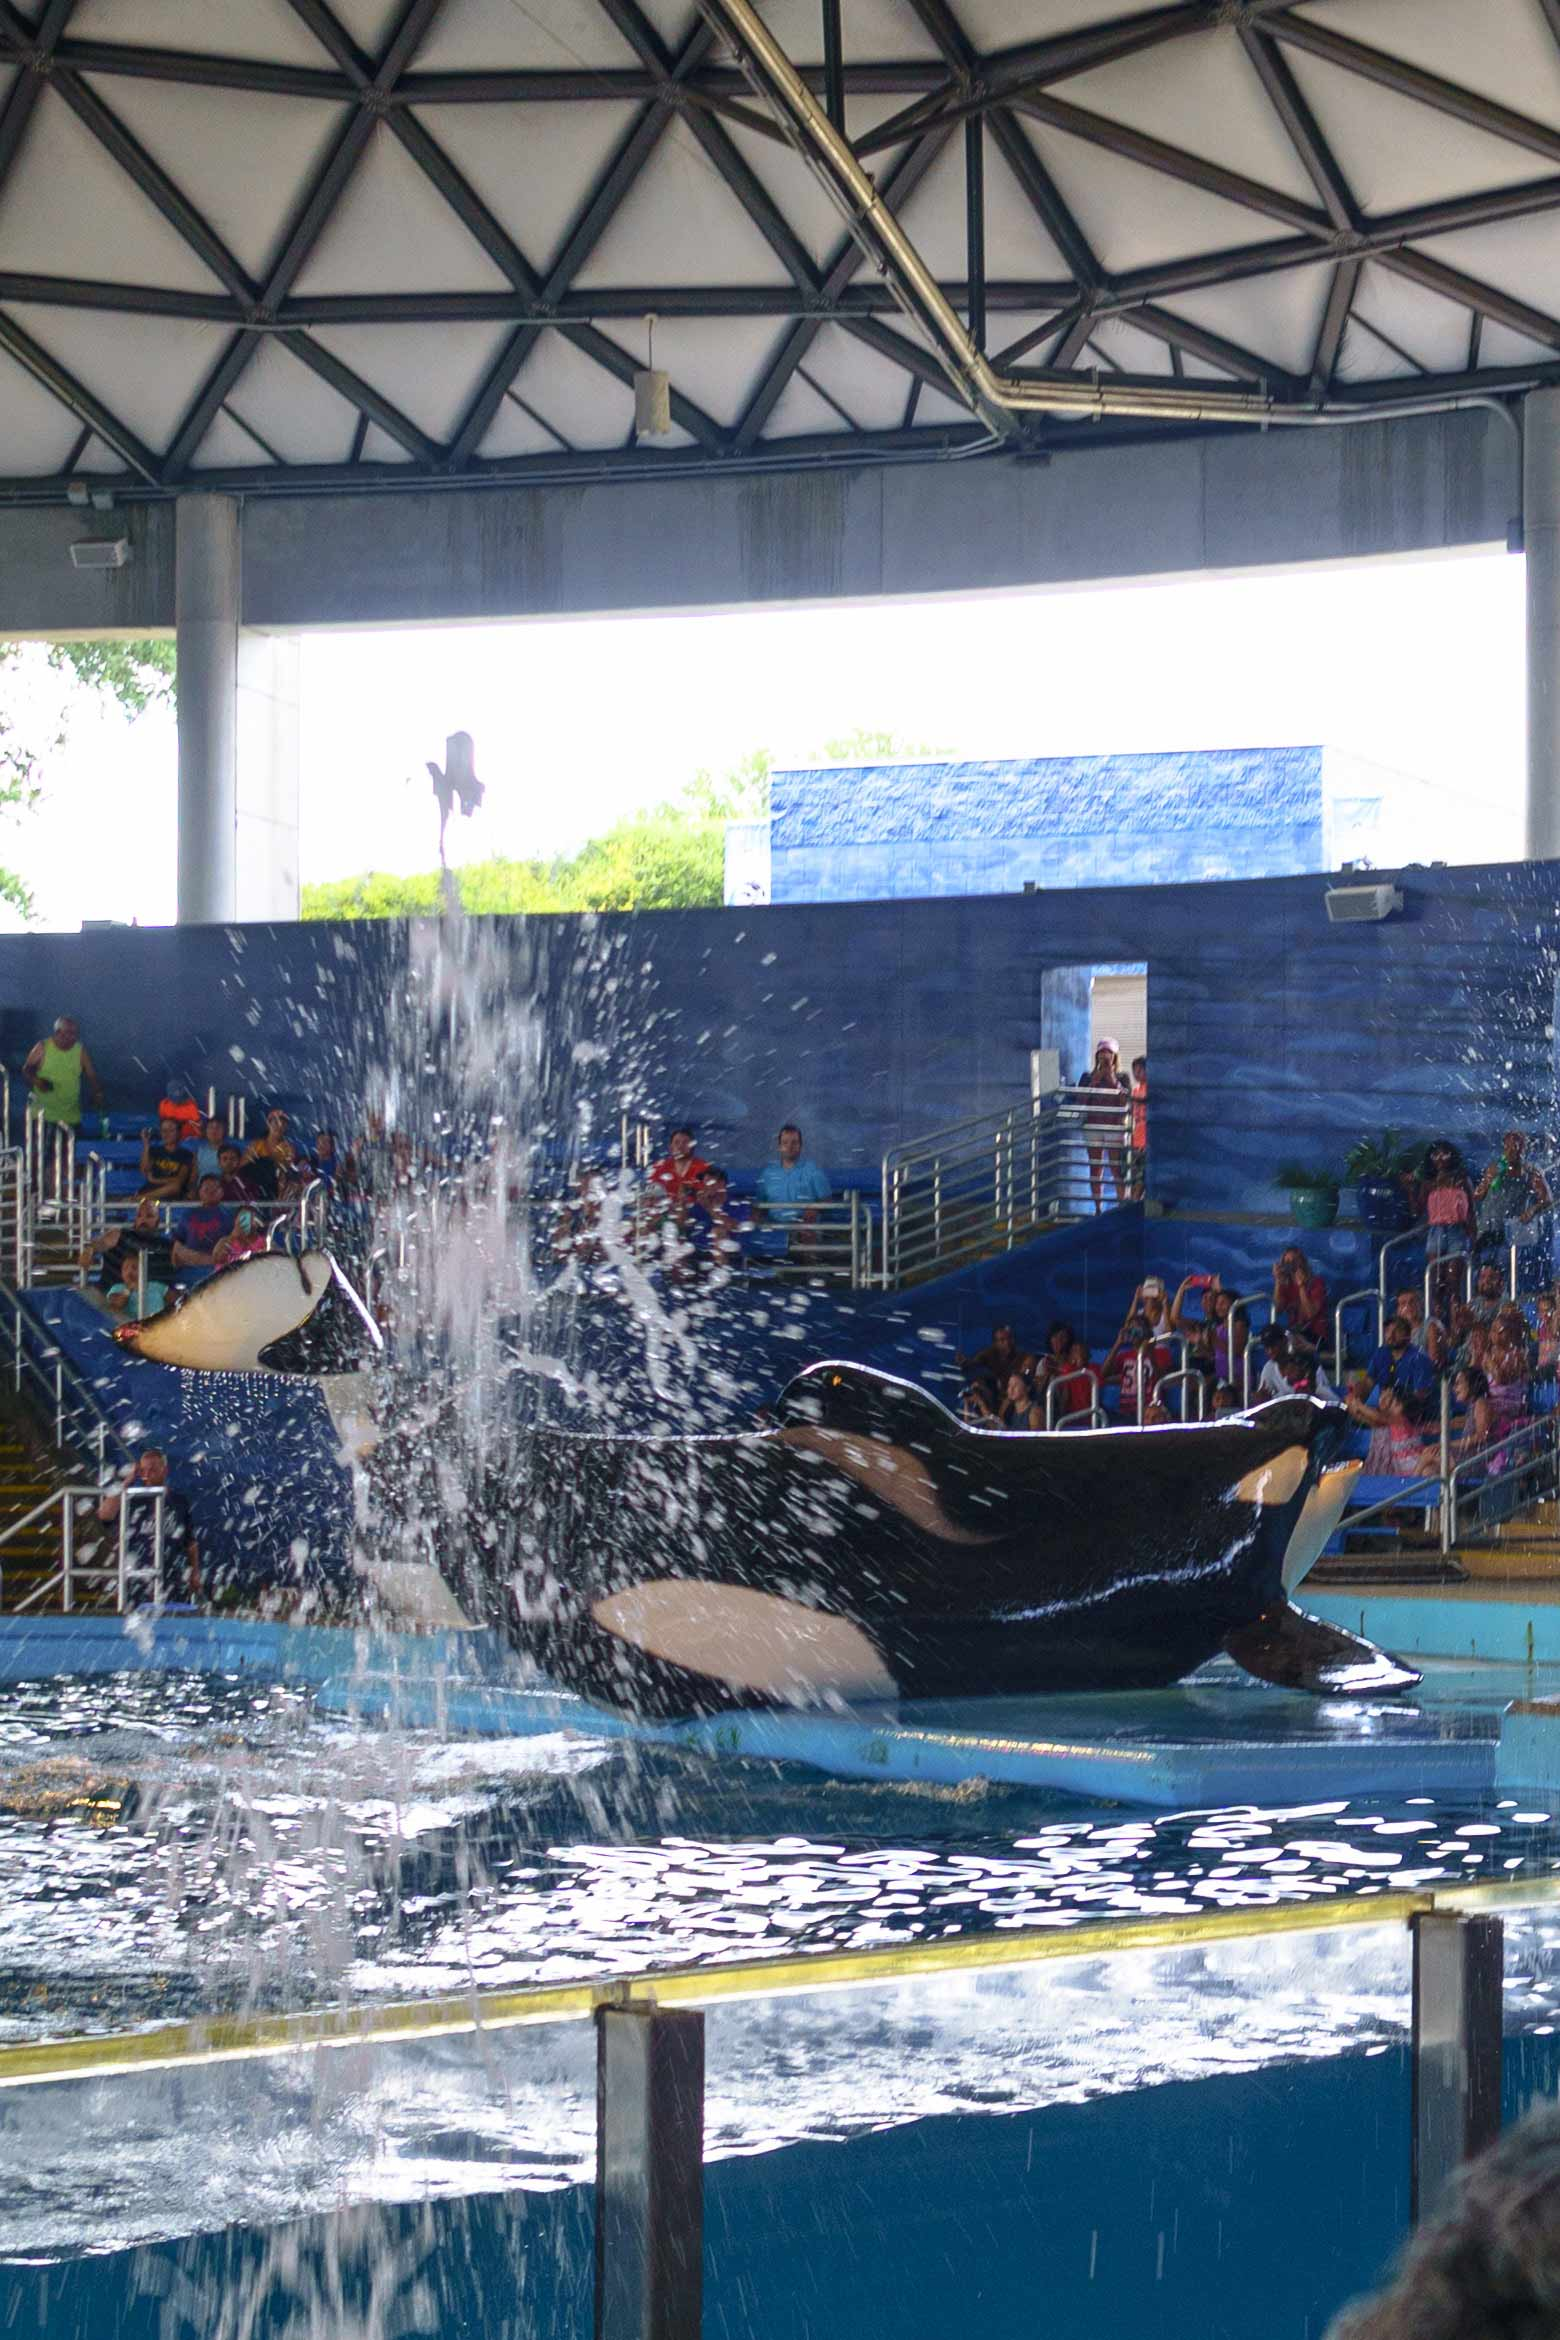 Sea World San Antonio then and now! Come see all the changes the park has made as well as a walk down memory lane!